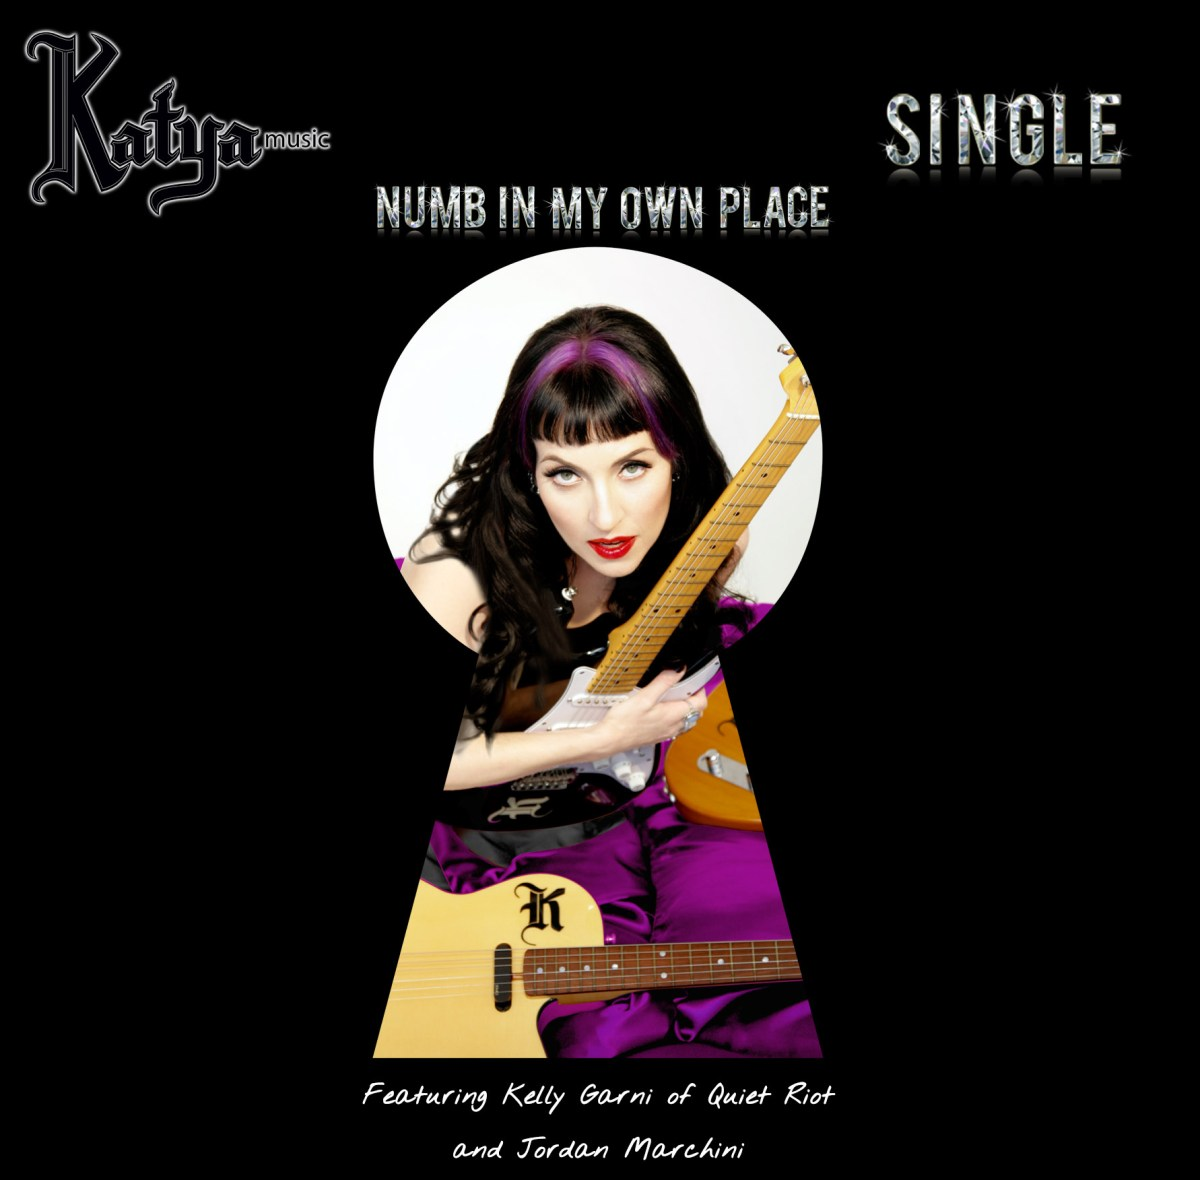 DJMM KATYA 9-22-2016 Numb in my Own Place Release